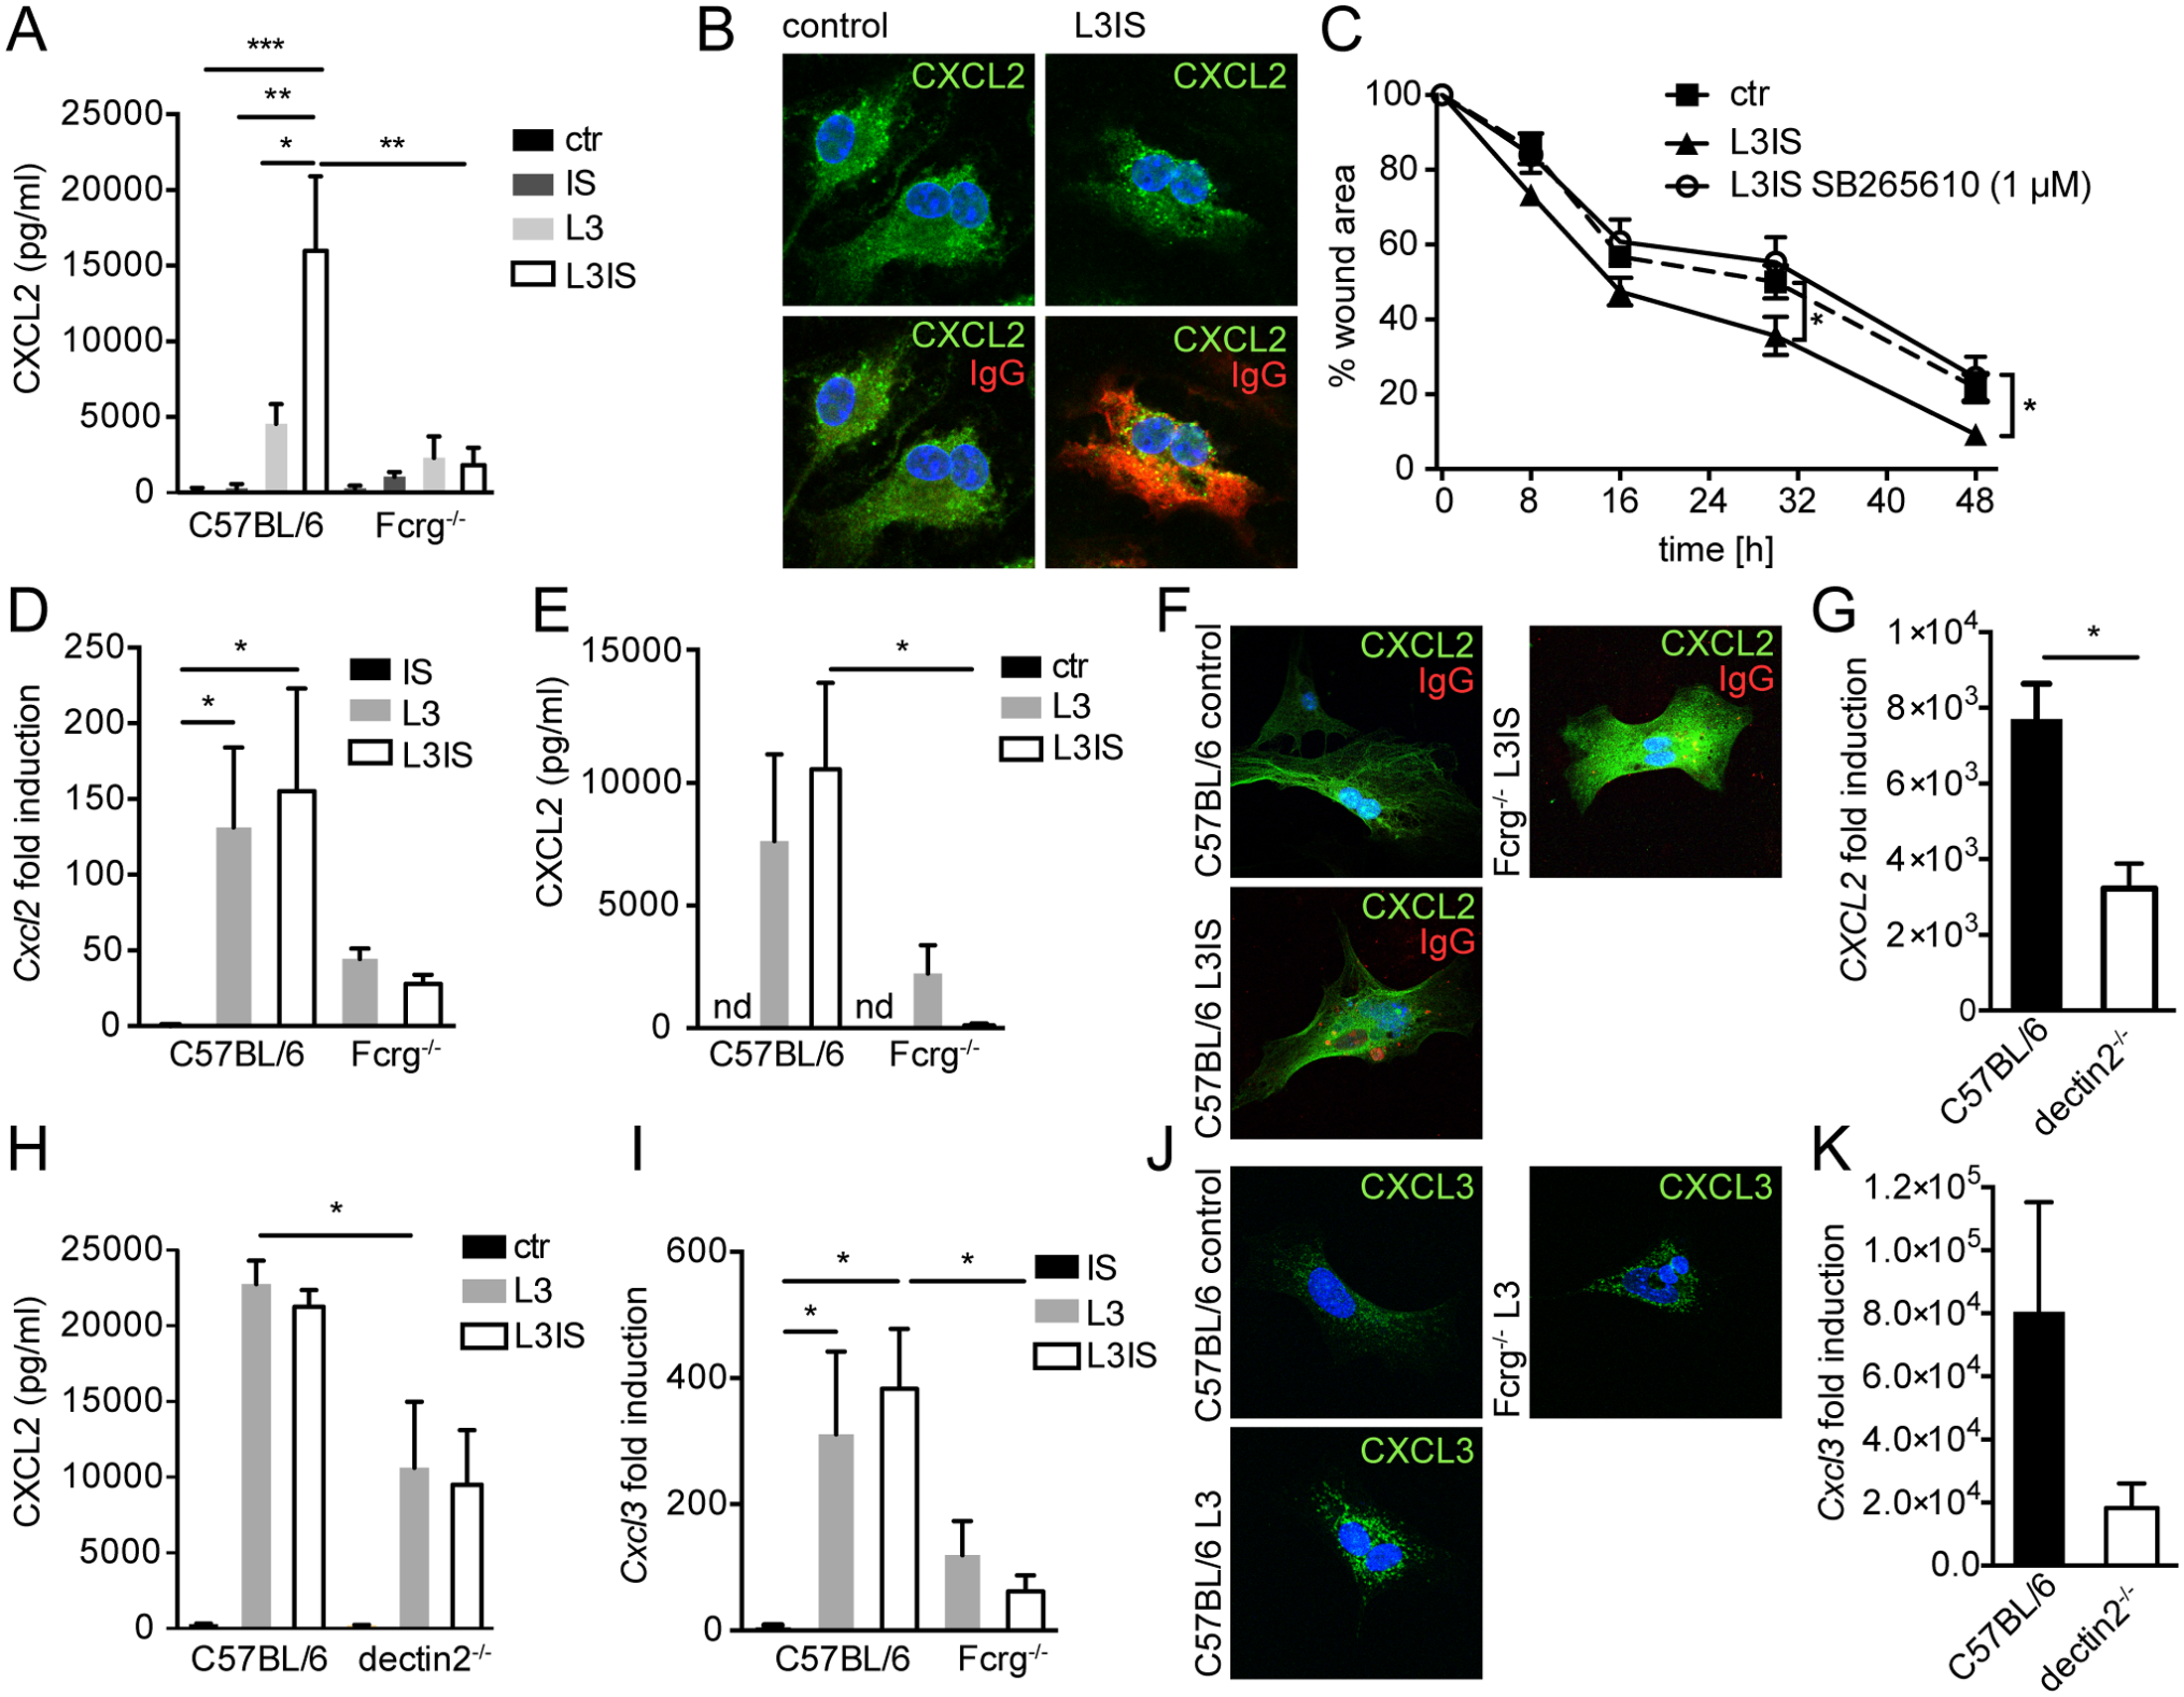 Helminths and antibodies trigger CXCL2 release by MΦ or MF via antibody-Fcrg- or Fcrg-chain/ dectin2 signaling, respectively and MF respond to MΦ-produced CXCR2 ligands in vitro.